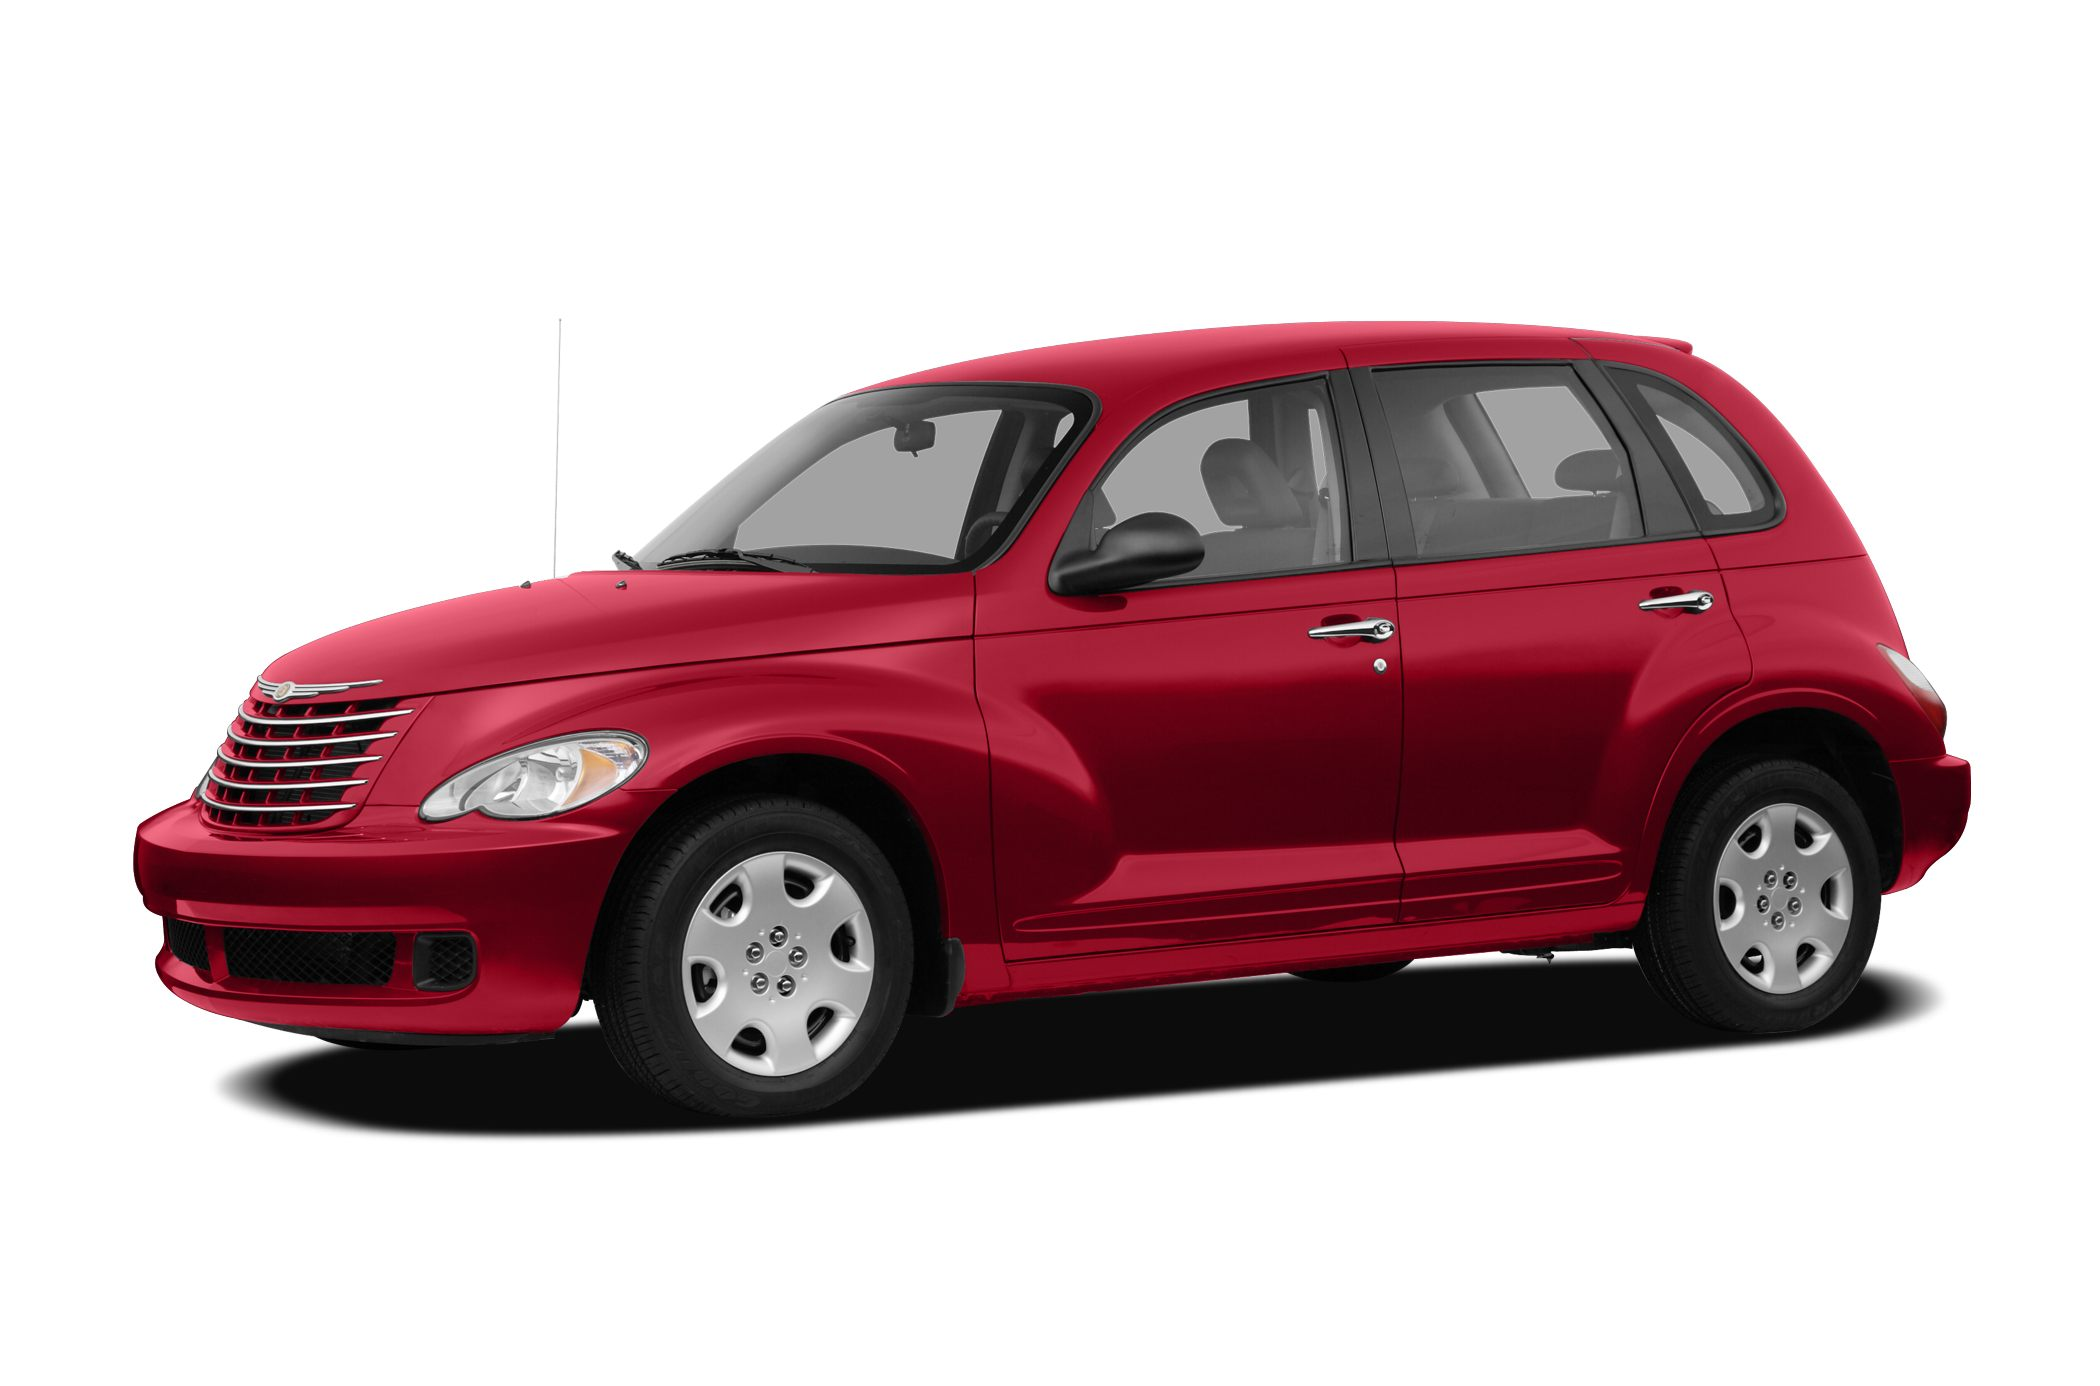 2008 Chrysler PT Cruiser LX Lake Keowee Chrysler Dodge Jeep has a wide selection of exceptional pr